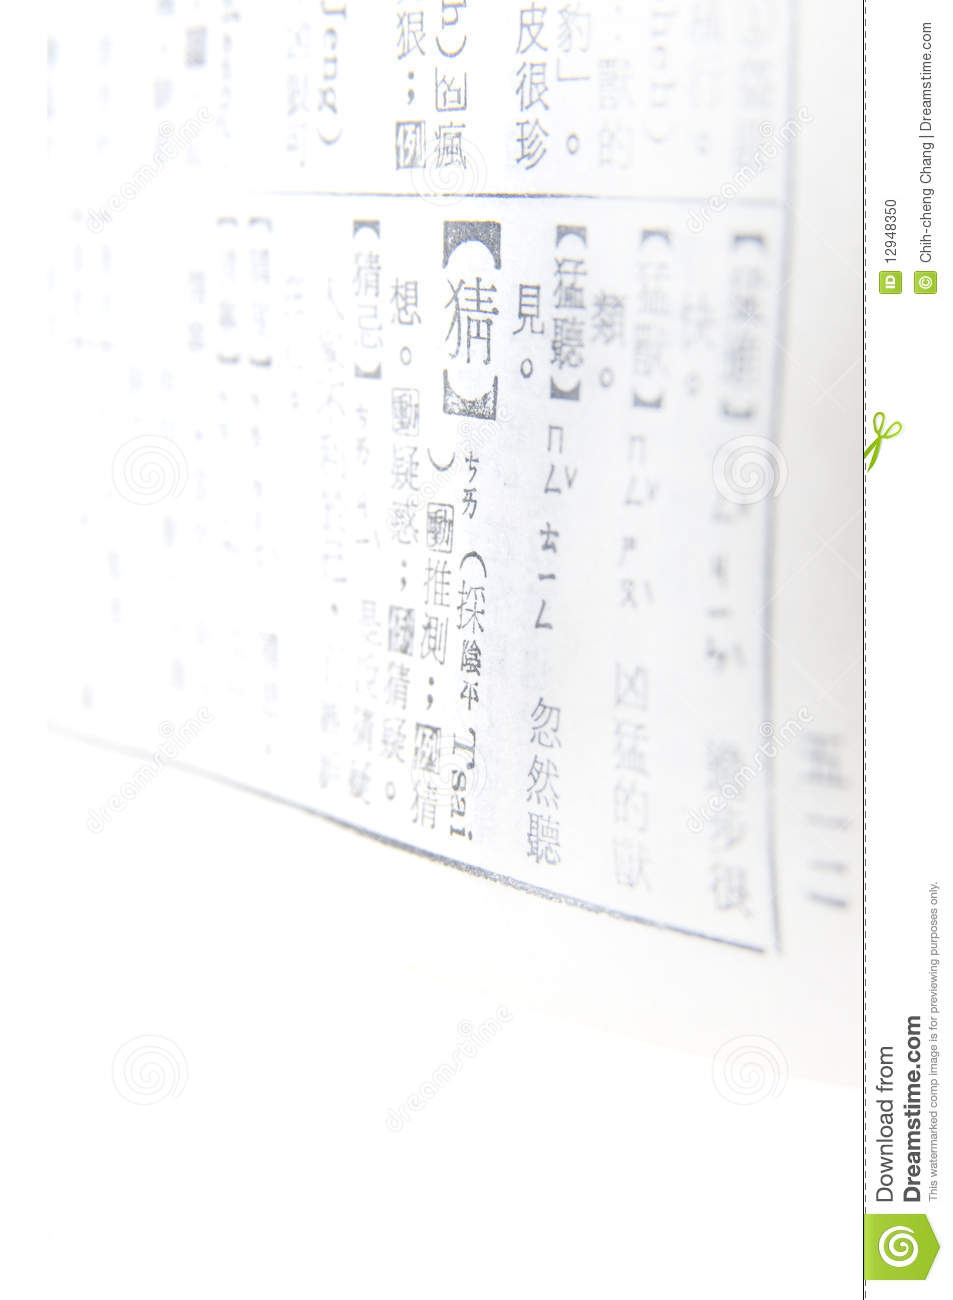 singhiozzante Confuso Perla  The Tranditional Chinese Dictionary Stock Photo - Image of word, guess:  12948350